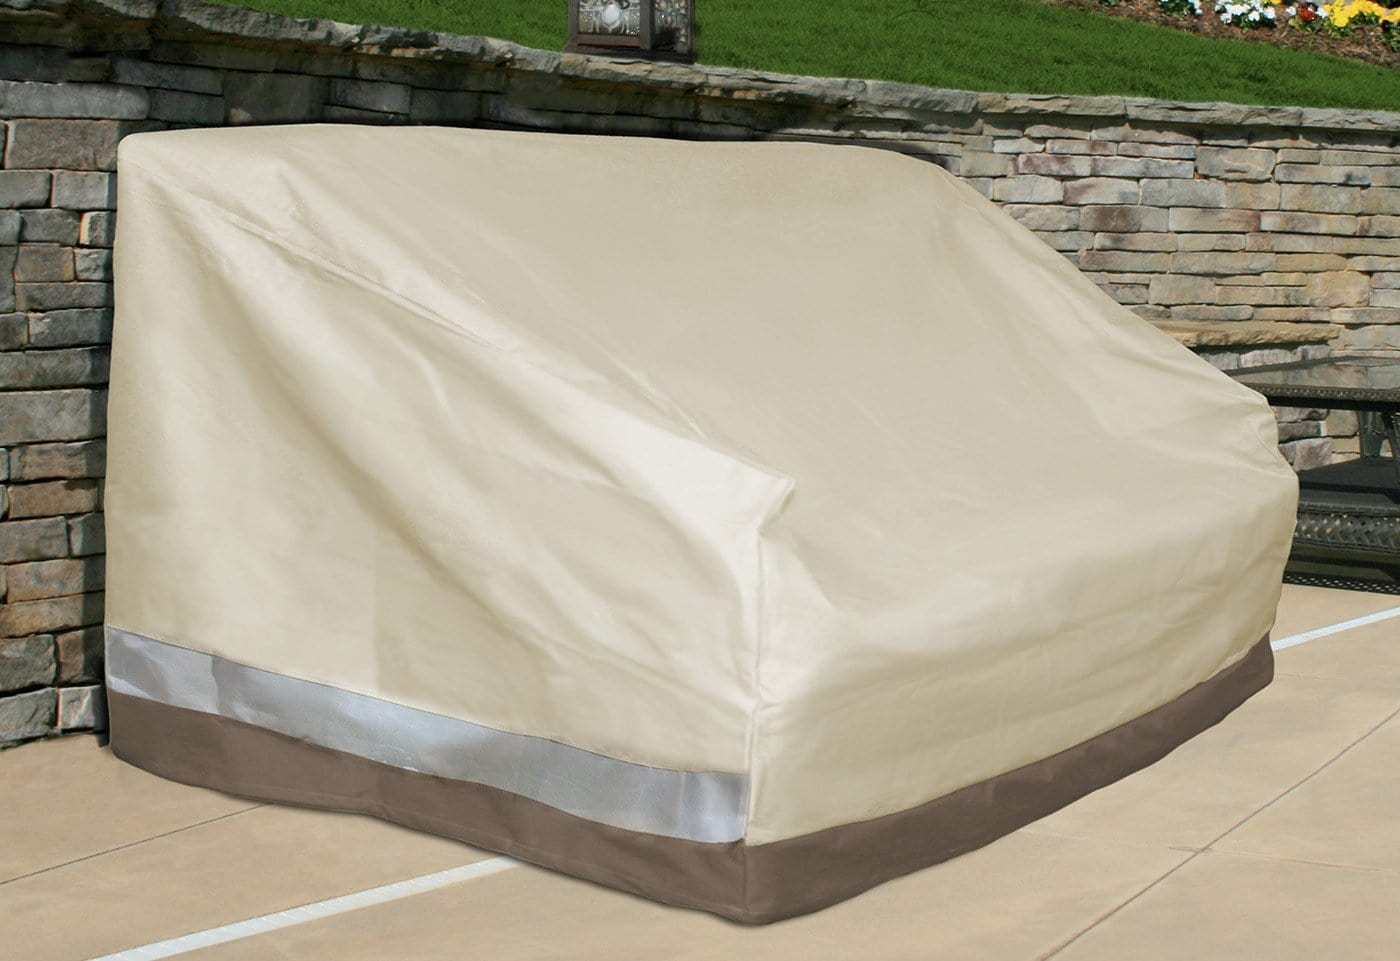 Patio Armor Large Sofa Outdoor Furniture Cover - Taupe